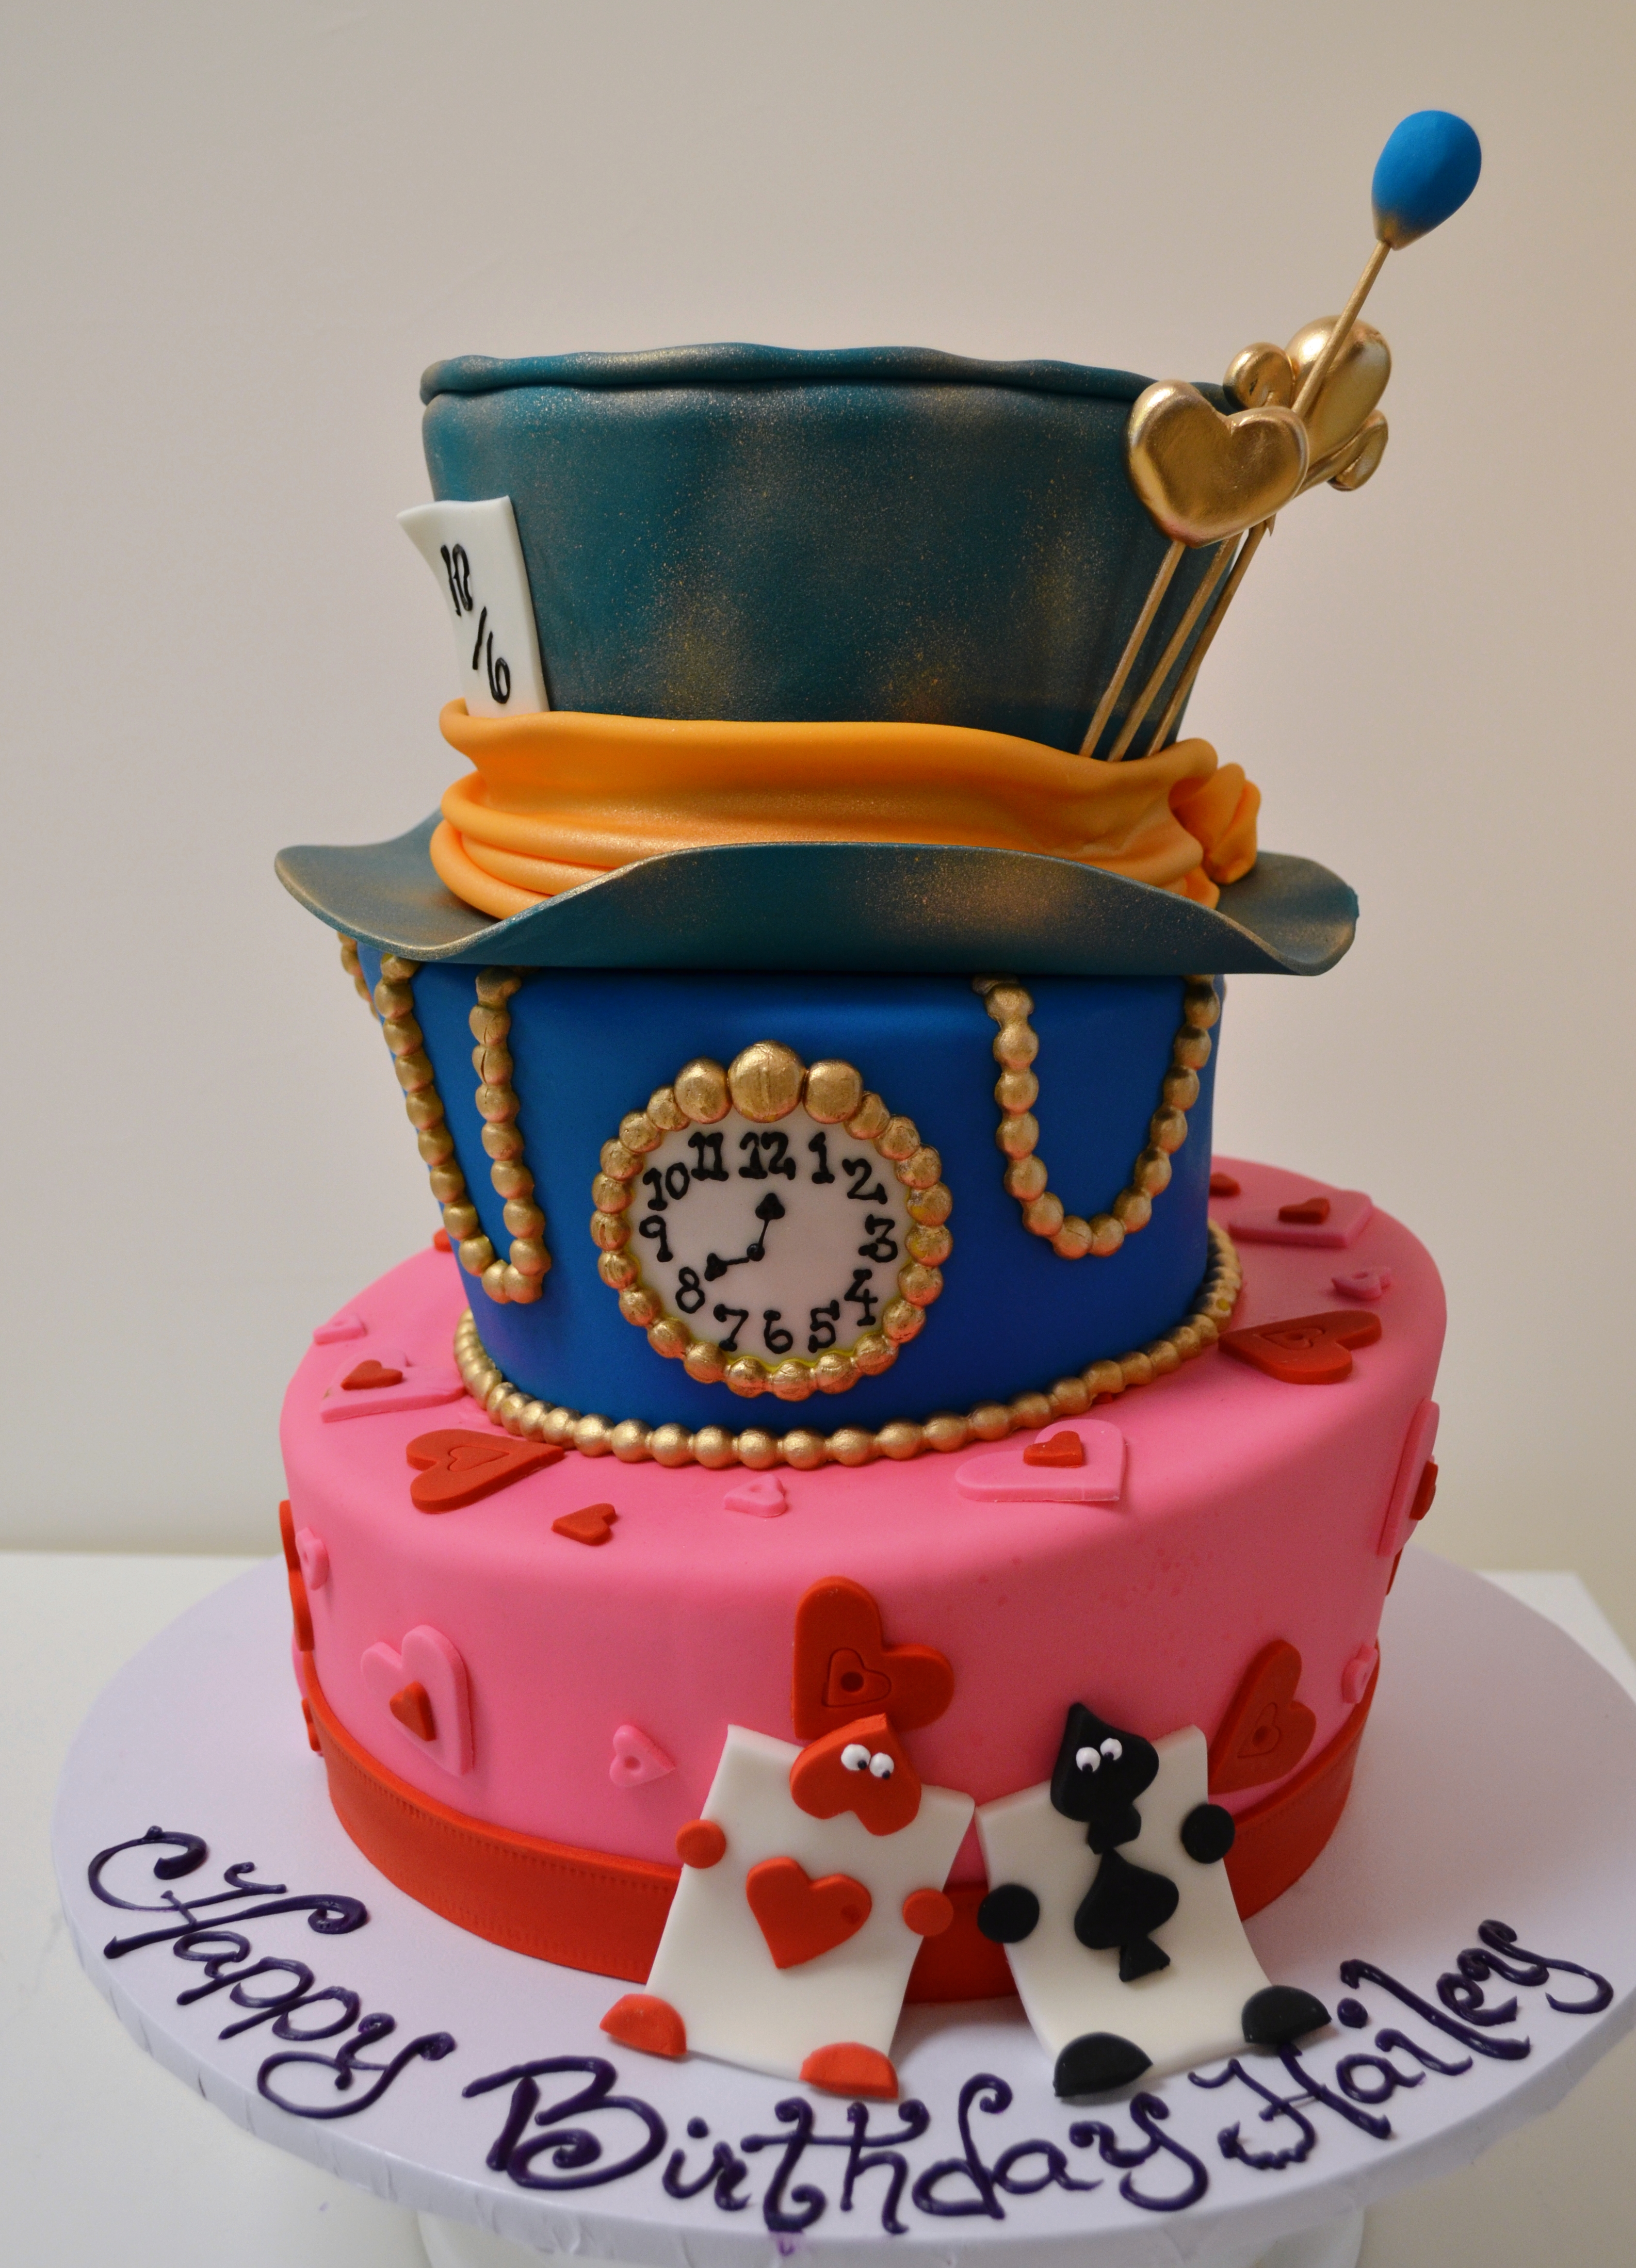 How about a Topsy Turvy Cake for your Wedding Day?